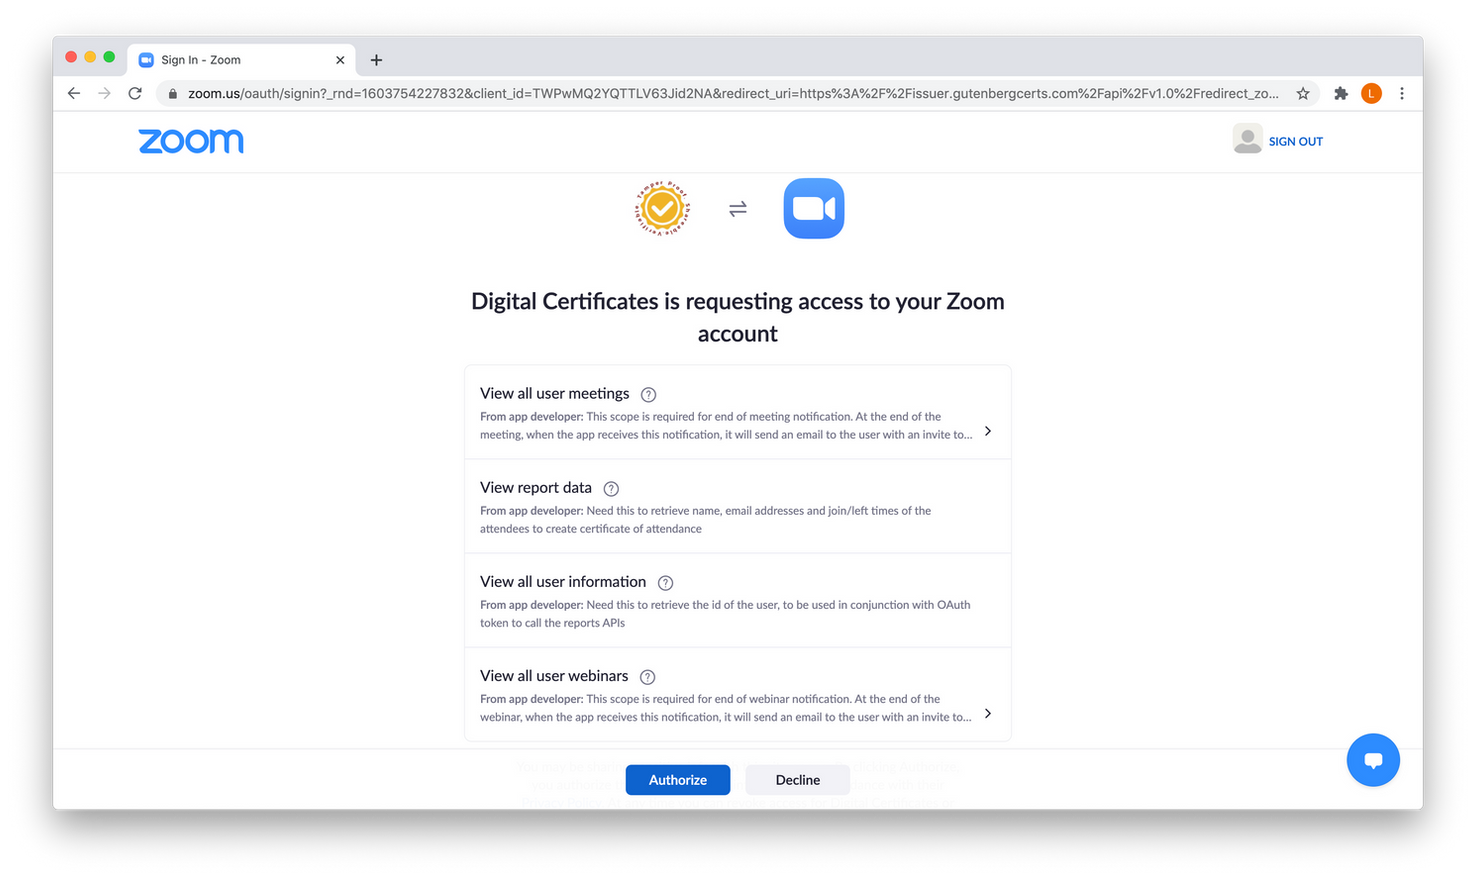 """Click """"Authorize"""" to allow Digital Certificates to view the data needed to create your certificates."""